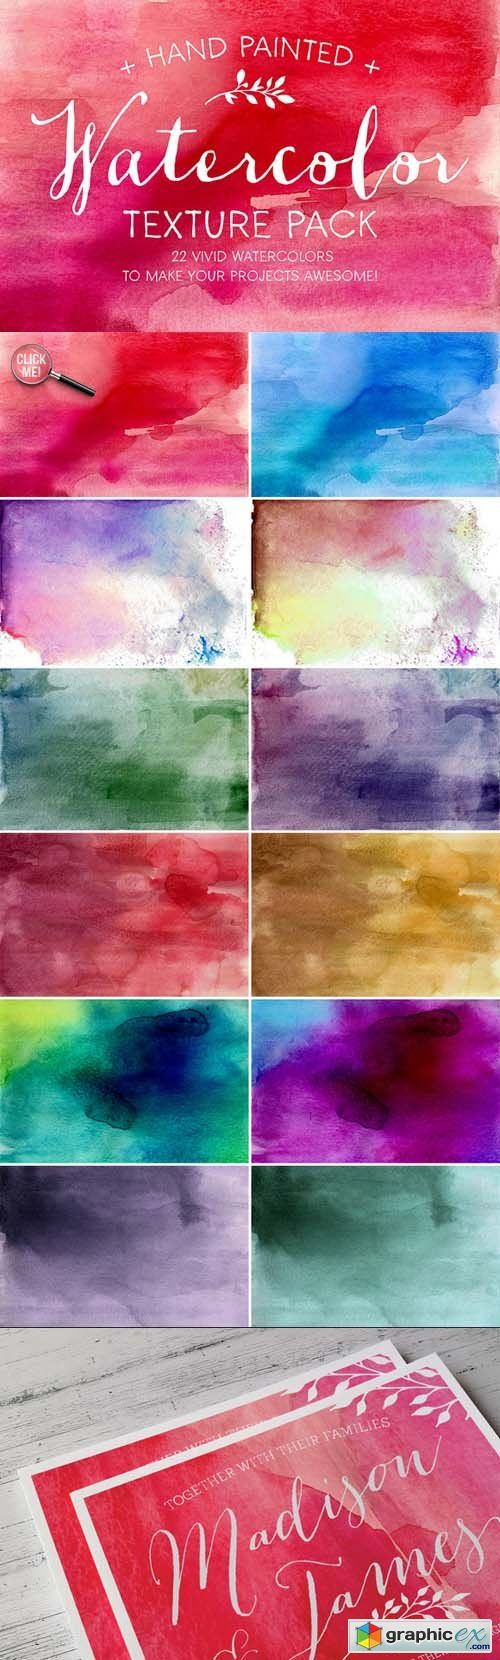 http://graphicex.com/stock-image/stock-textures-patterns/19774-watercolor-texture-pack-74570.html